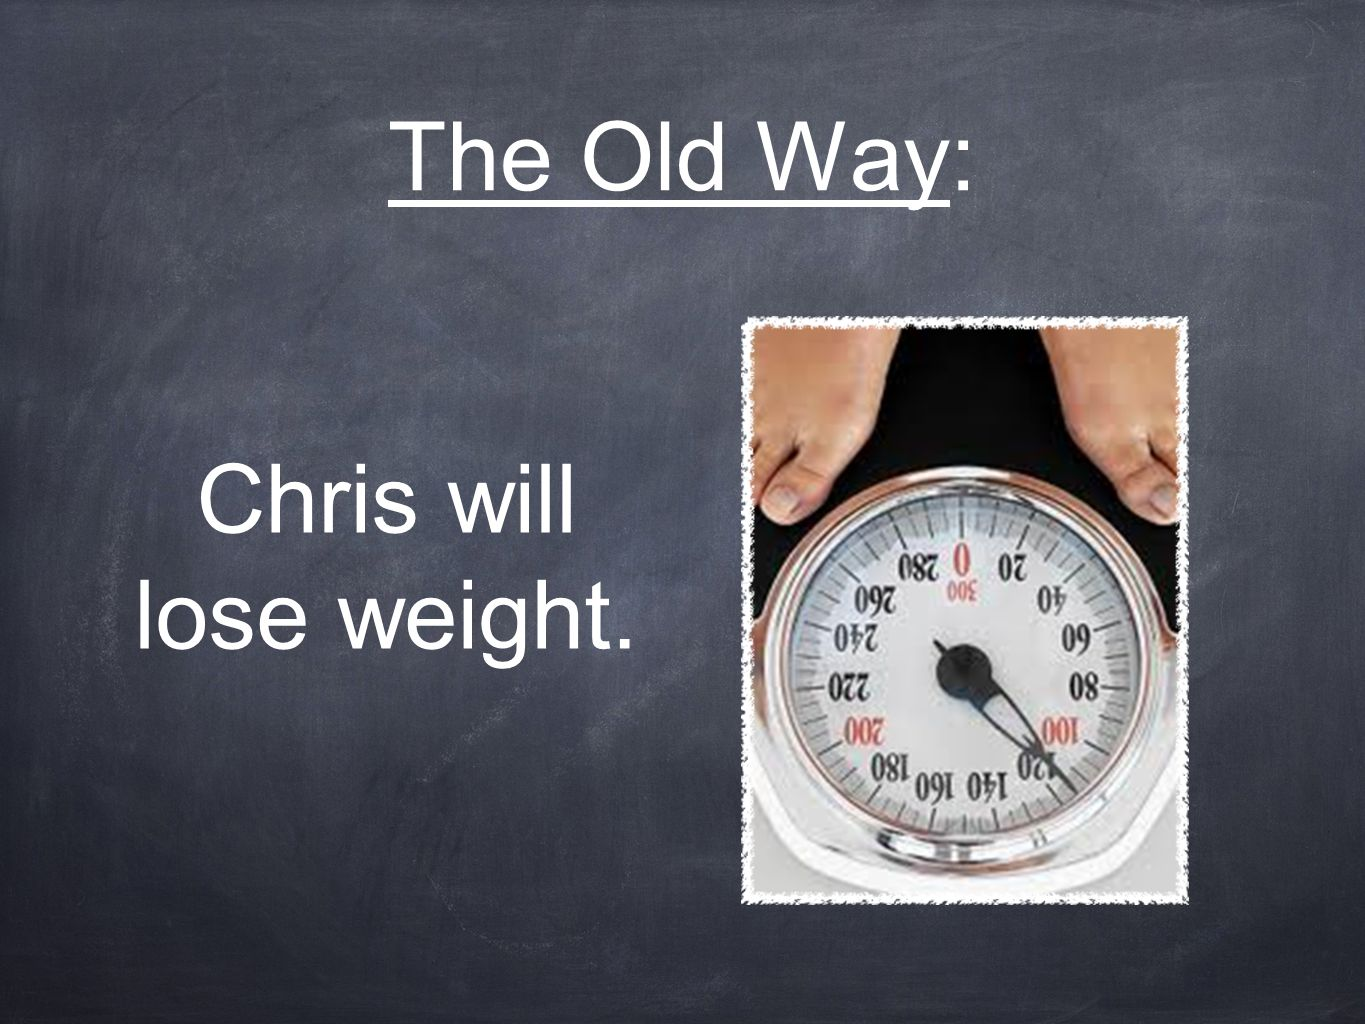 The Old Way: Chris will lose weight.